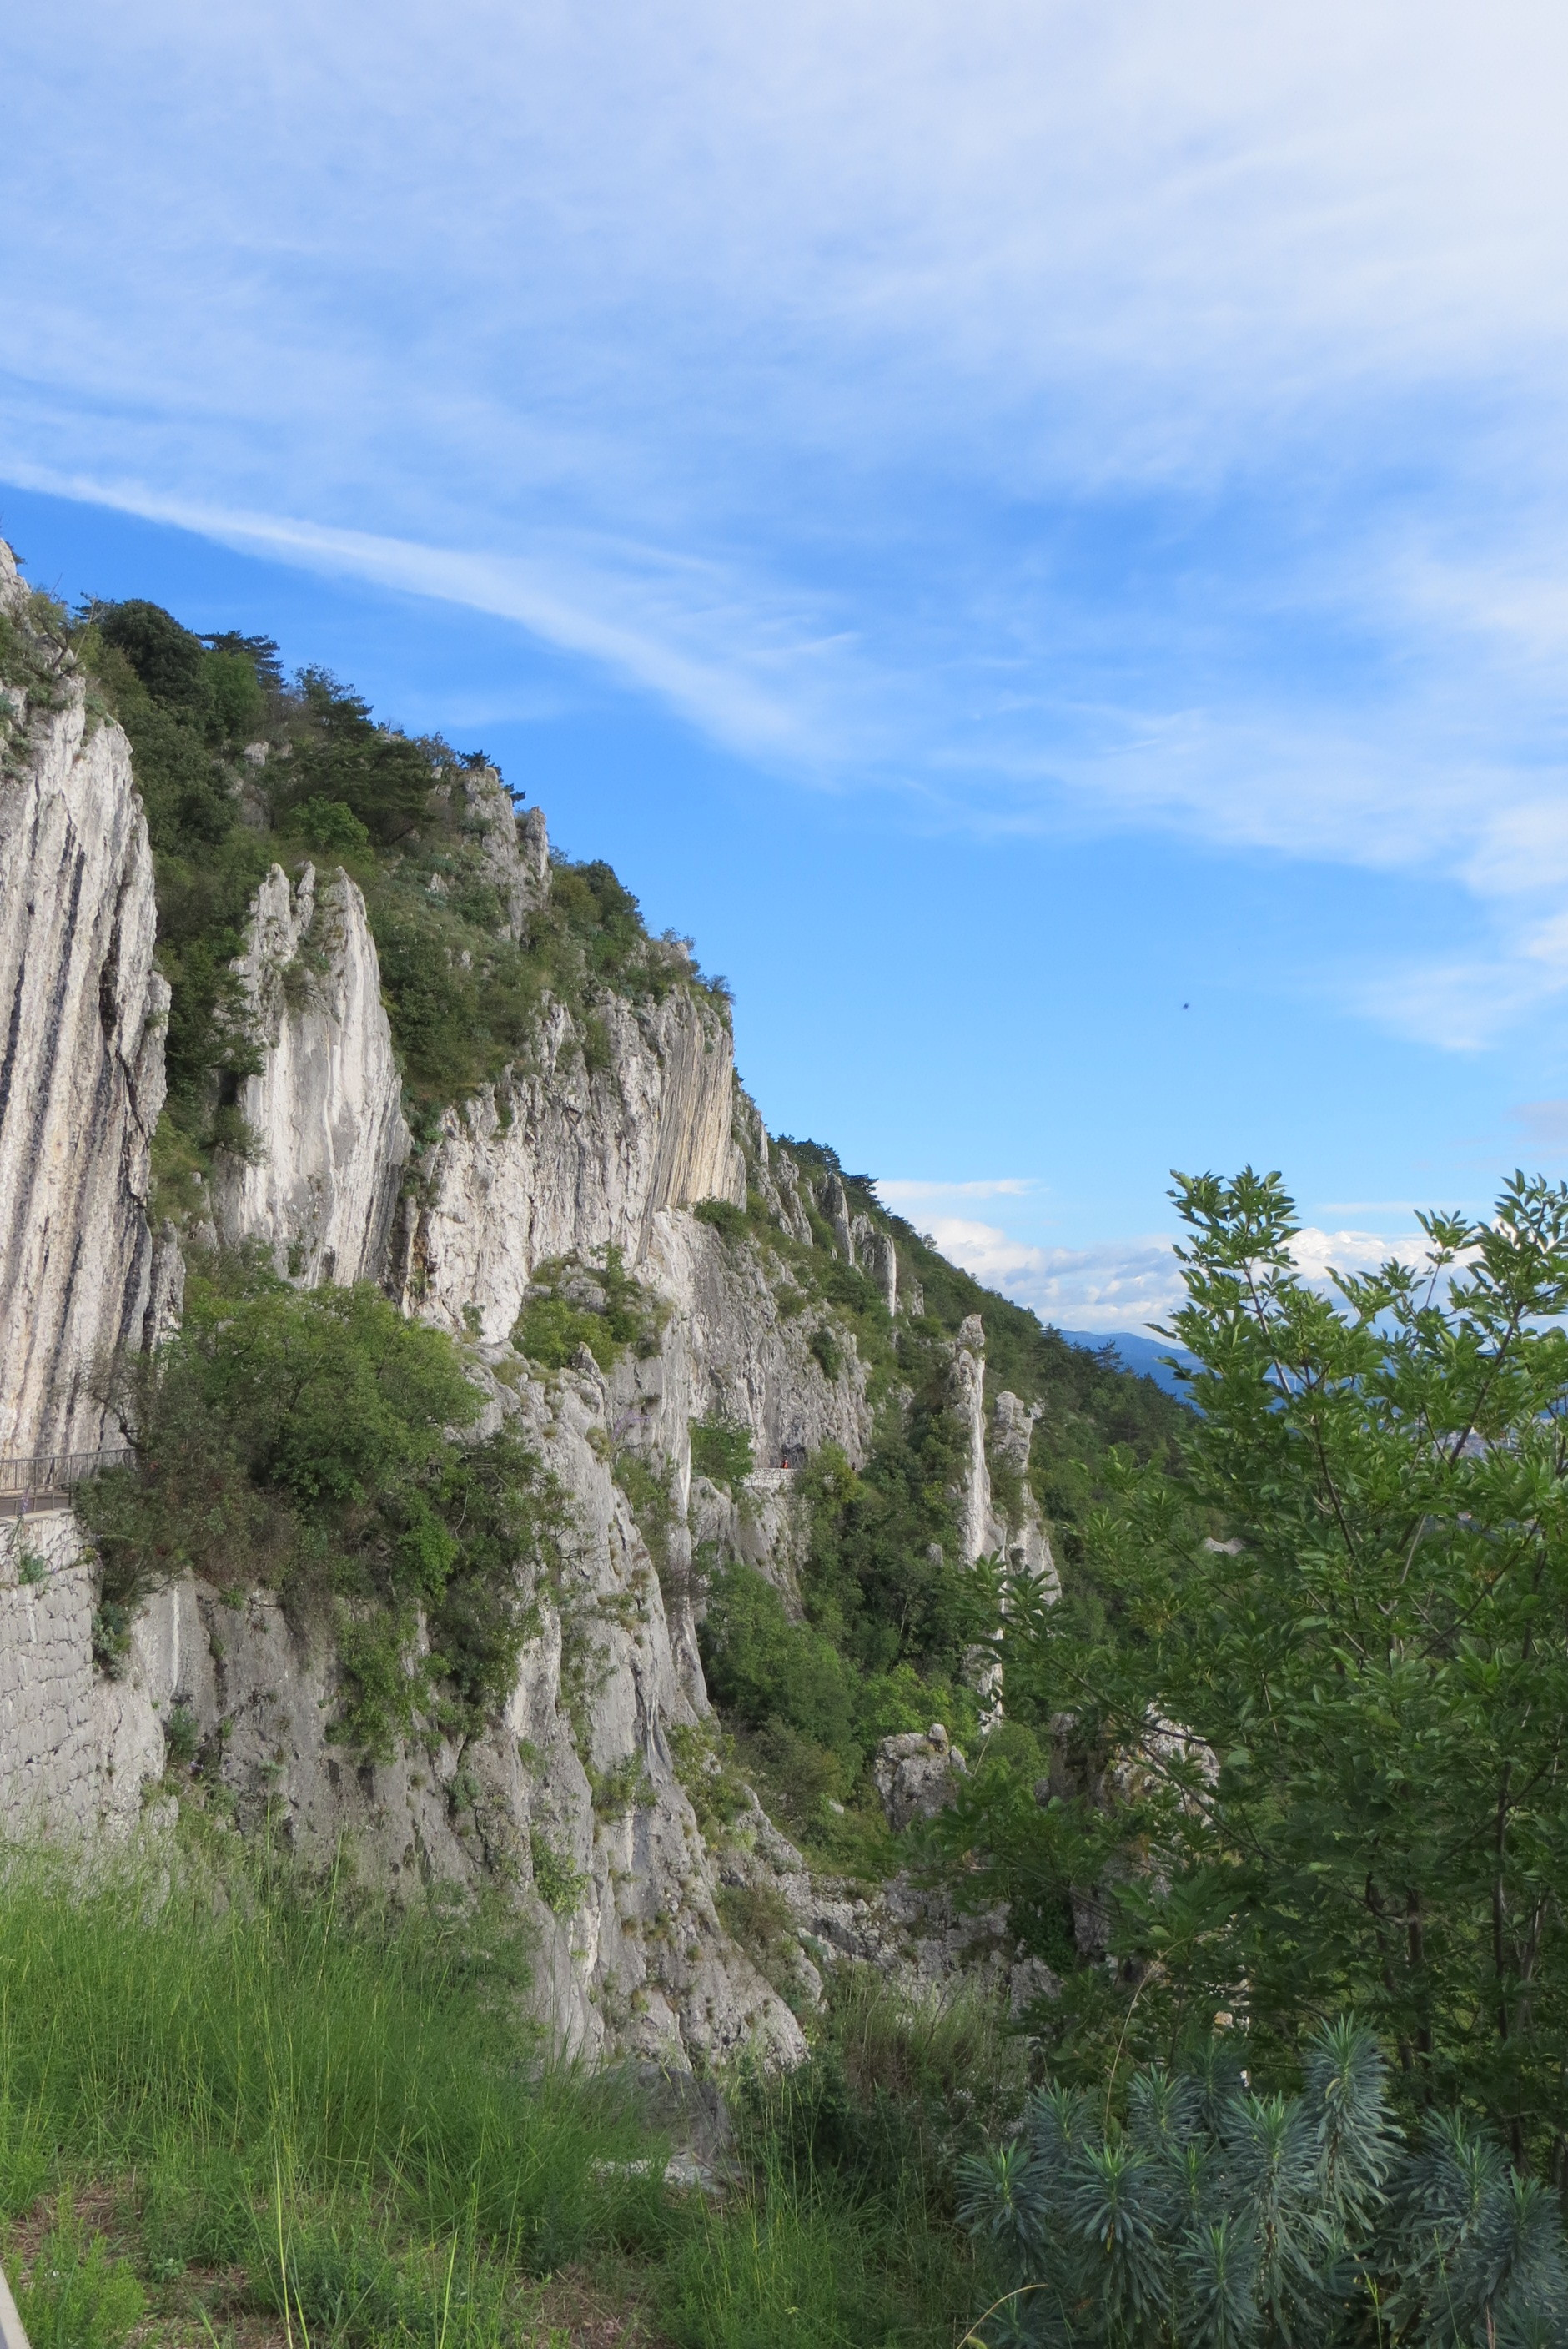 The cliffs of the Strada Napoleonica, above the Barcola of Trieste, Italy